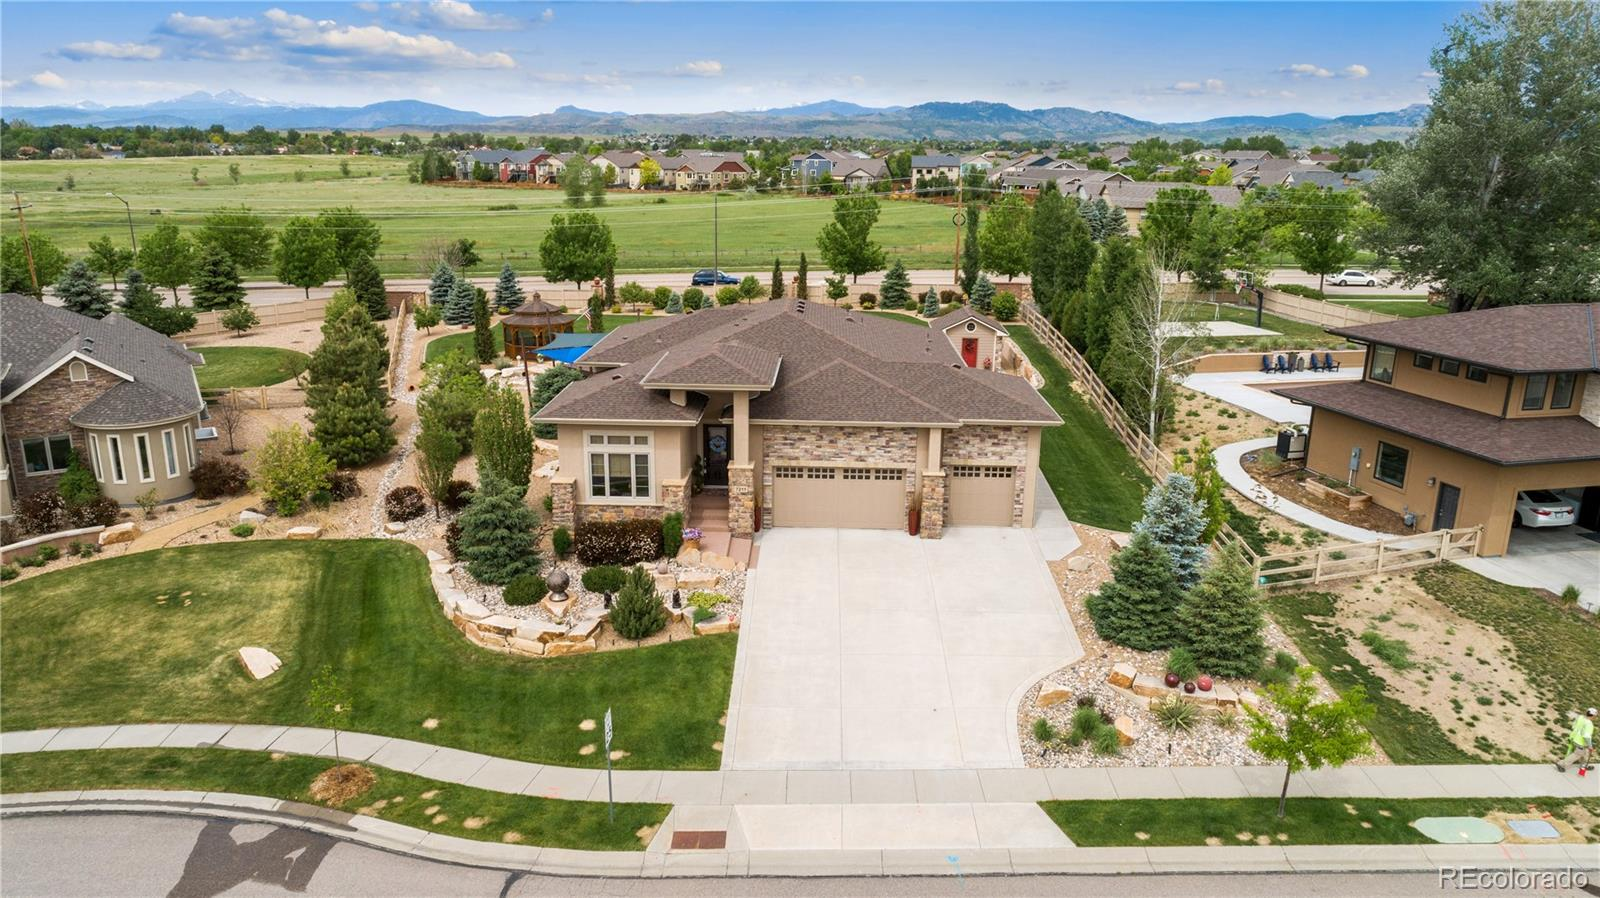 7211 Housmer Park Drive Property Photo - Fort Collins, CO real estate listing